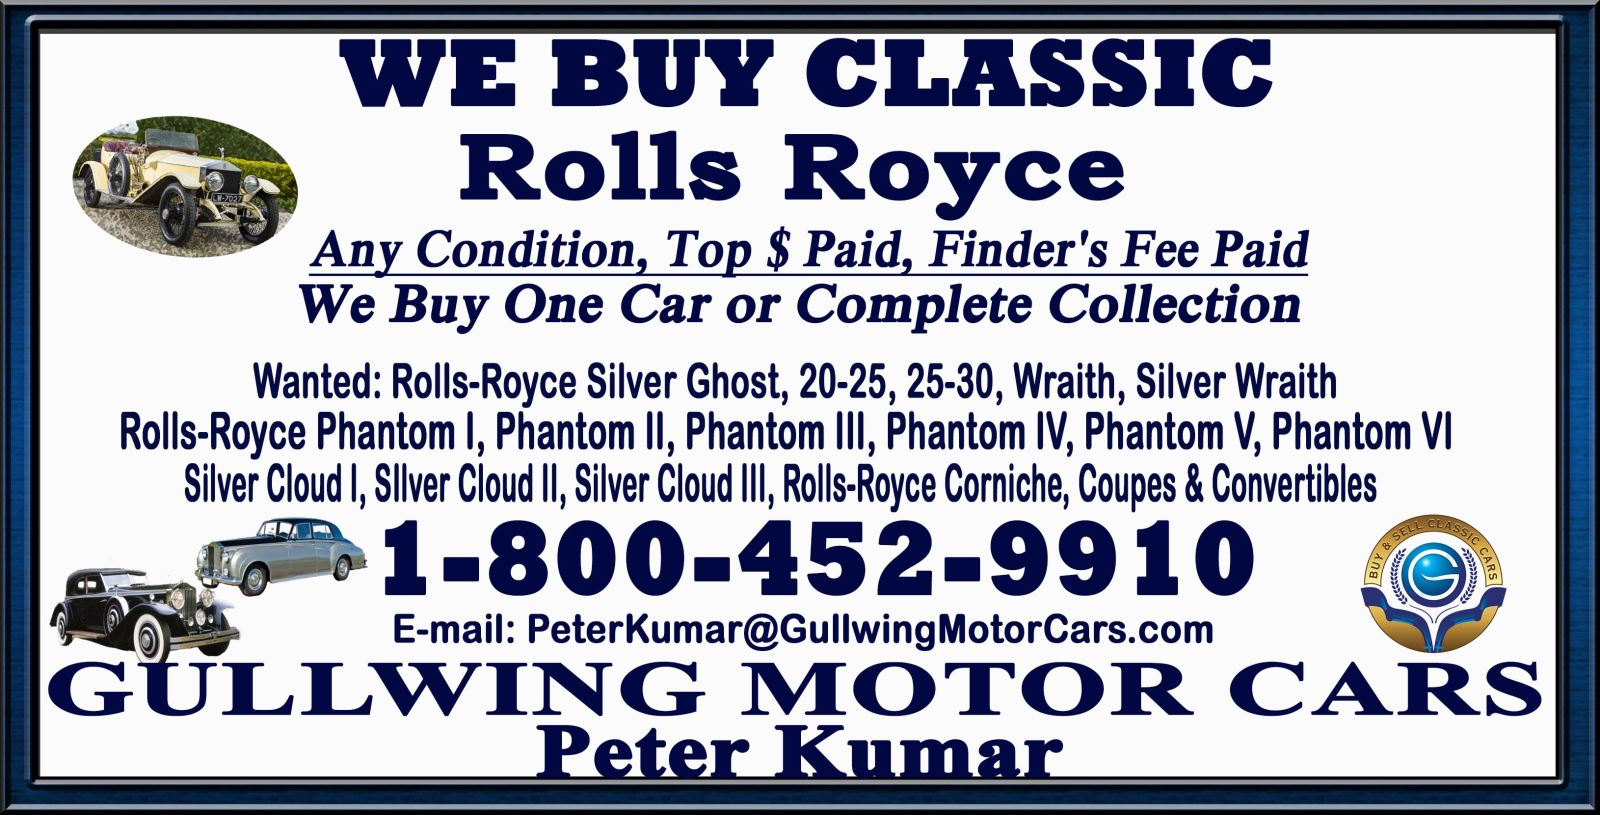 Sell Classic Rolls Royce | Call Gullwing Motor if Vintage Rolls Royce For Sale